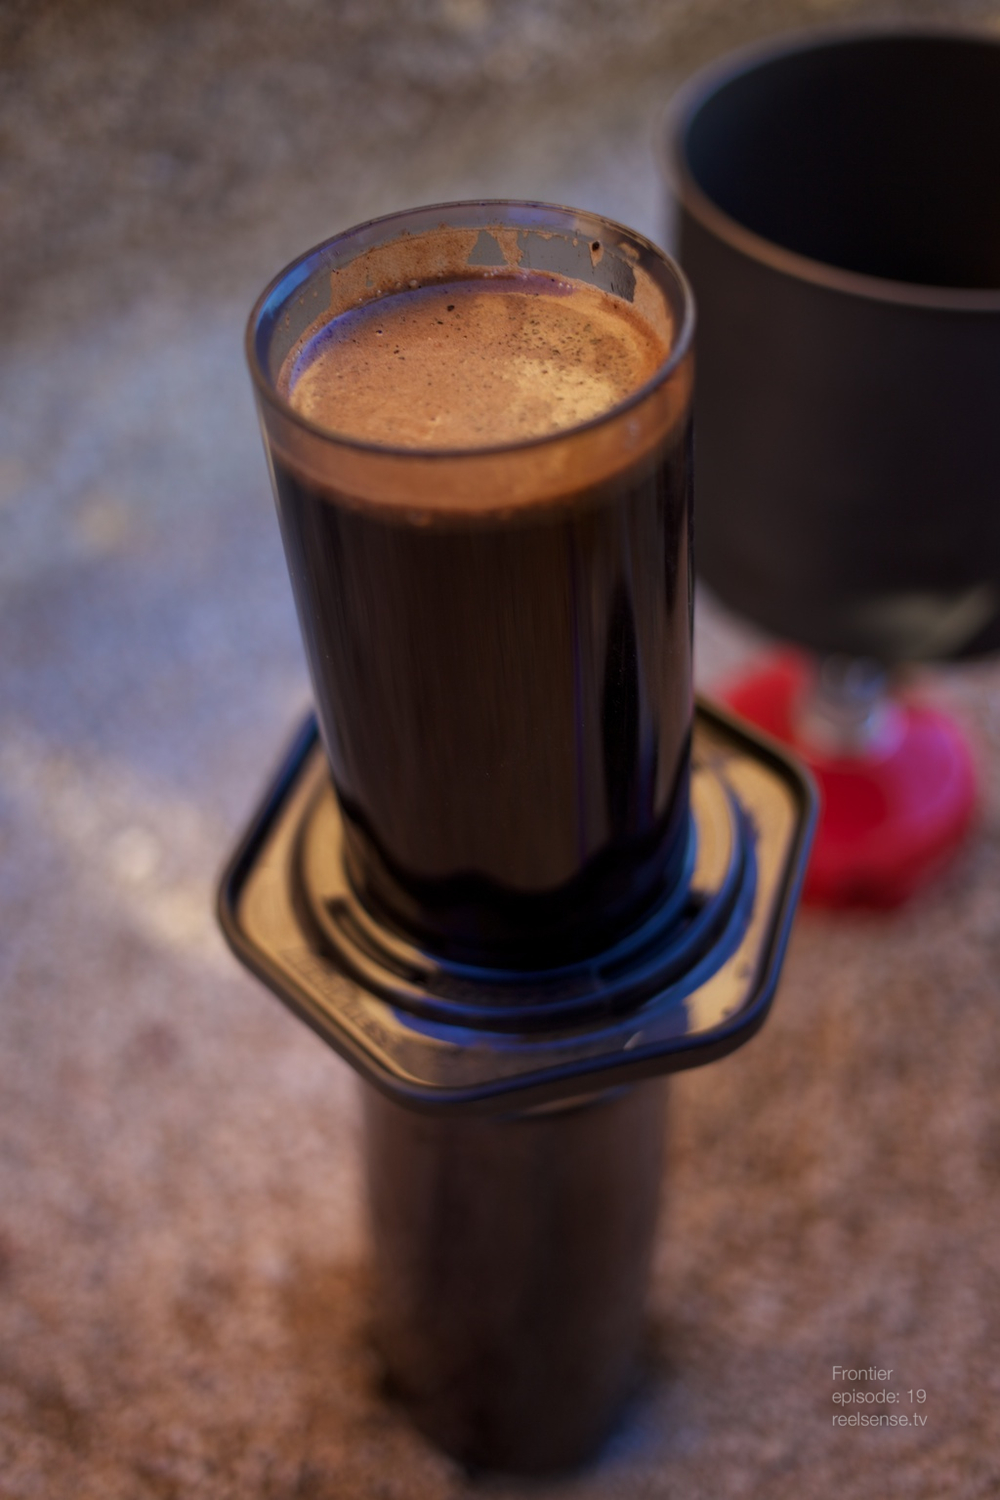 Joshua Tree - Starbucks Espresso blend in AeroPress